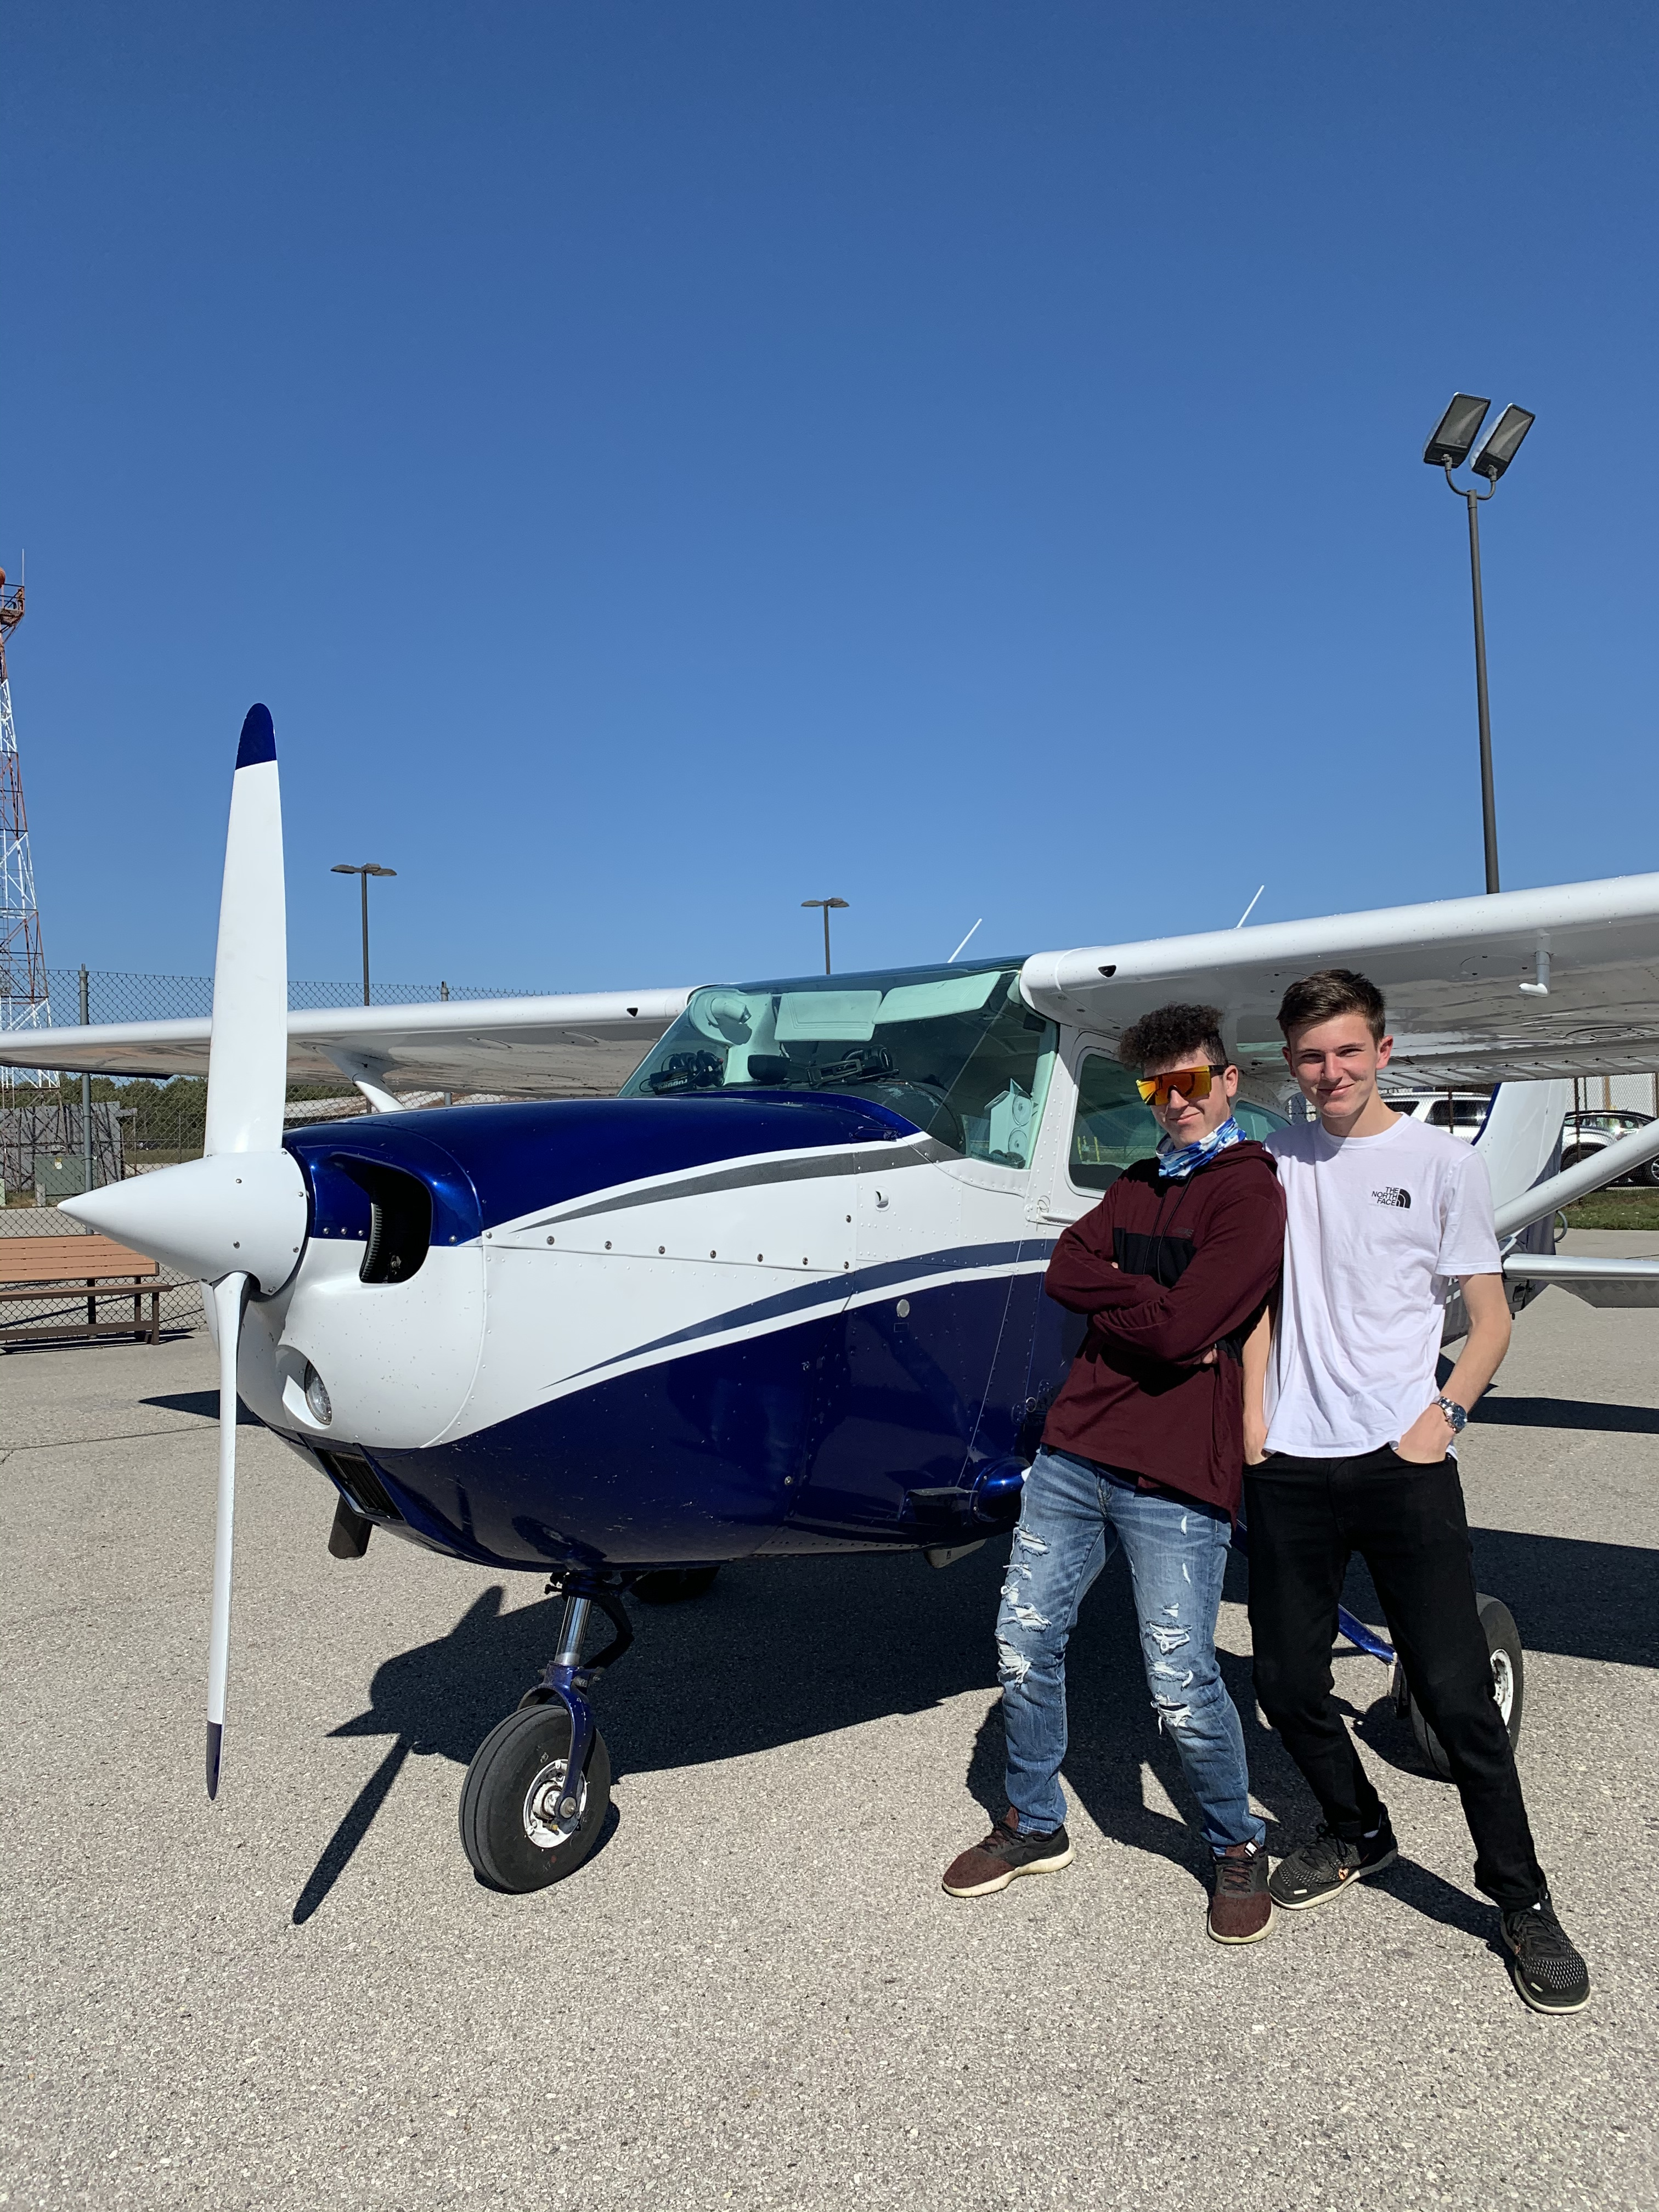 Elias from Germany (right) with his host brother after having fall scenic color plane ride at the local airport, where they flew over their town and house.